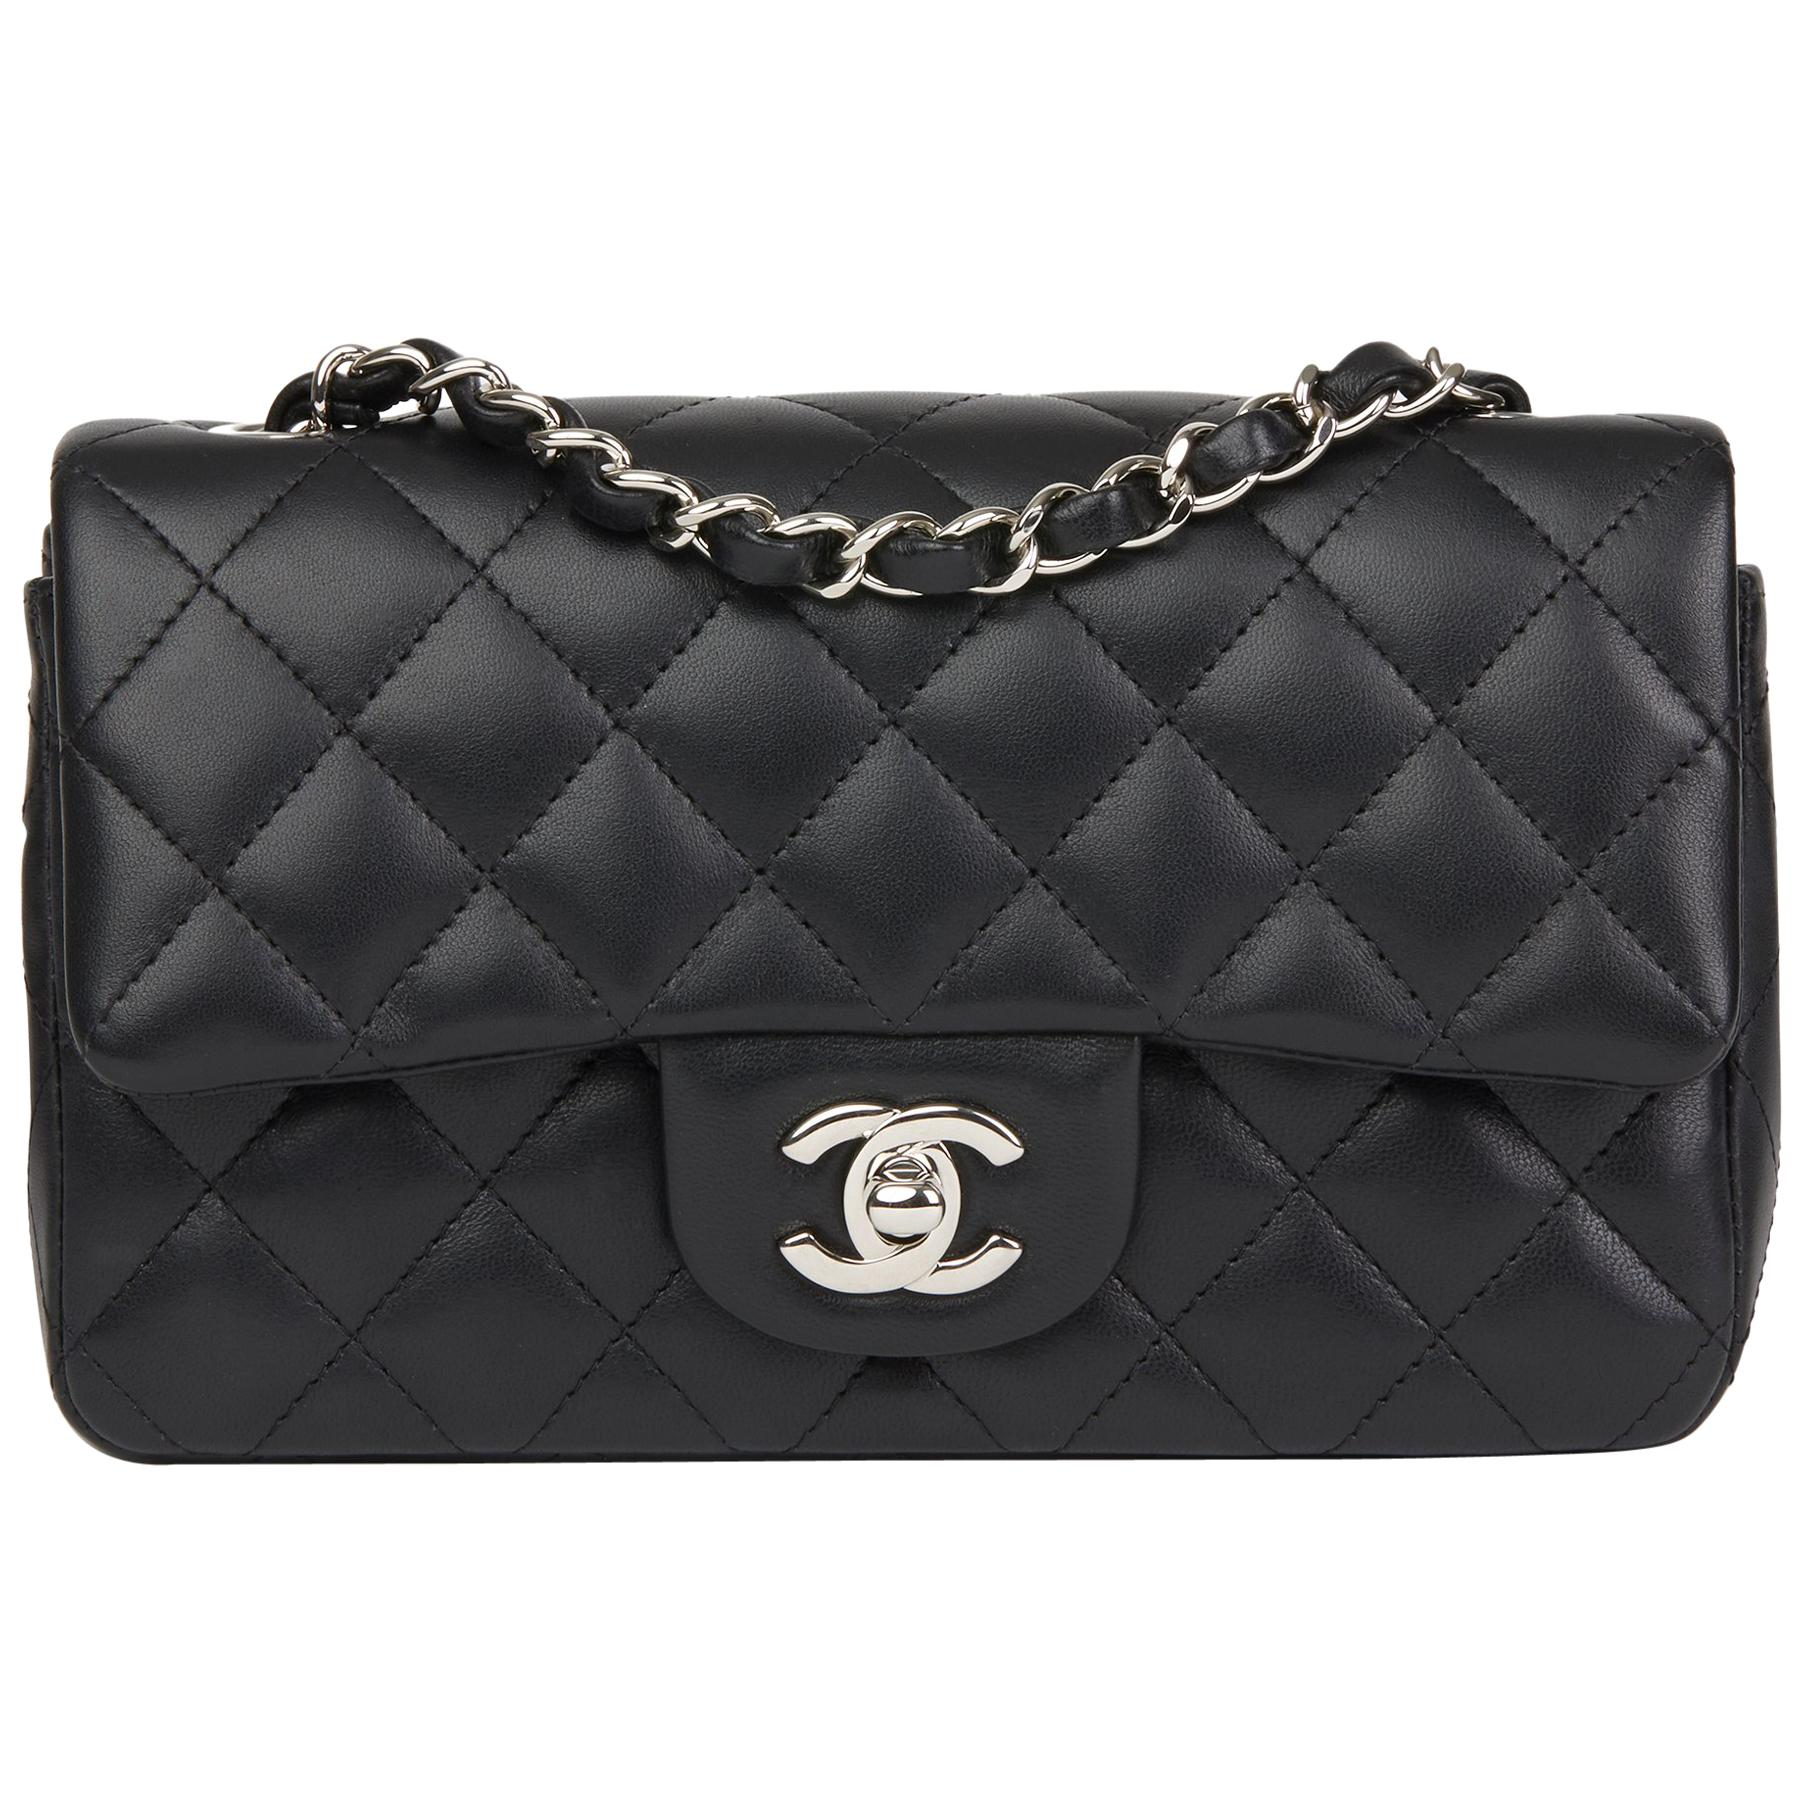 9b5b14f22aea 2019 Chanel Black Quilted Lambskin Rectangular Mini Flap Bag at 1stdibs